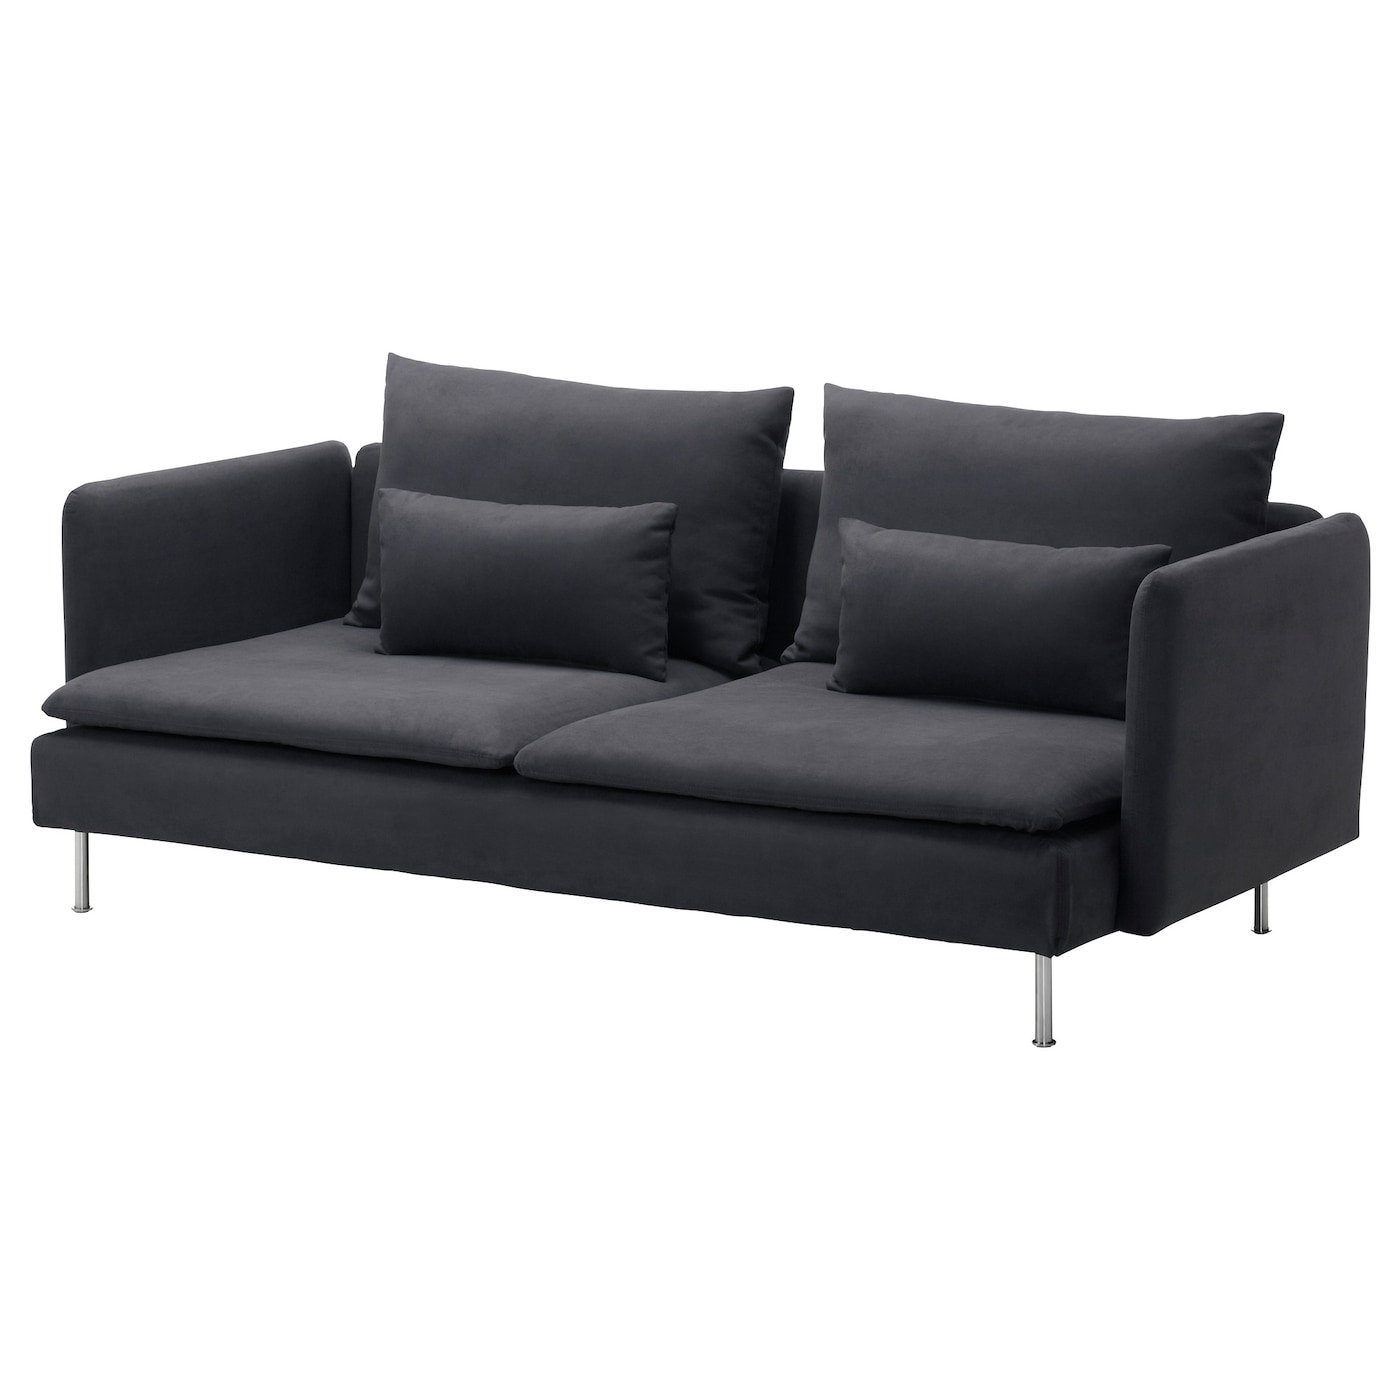 Soderhamn three seat sofa samsta dark grey ikea for Sofa tiefe sitzfl che